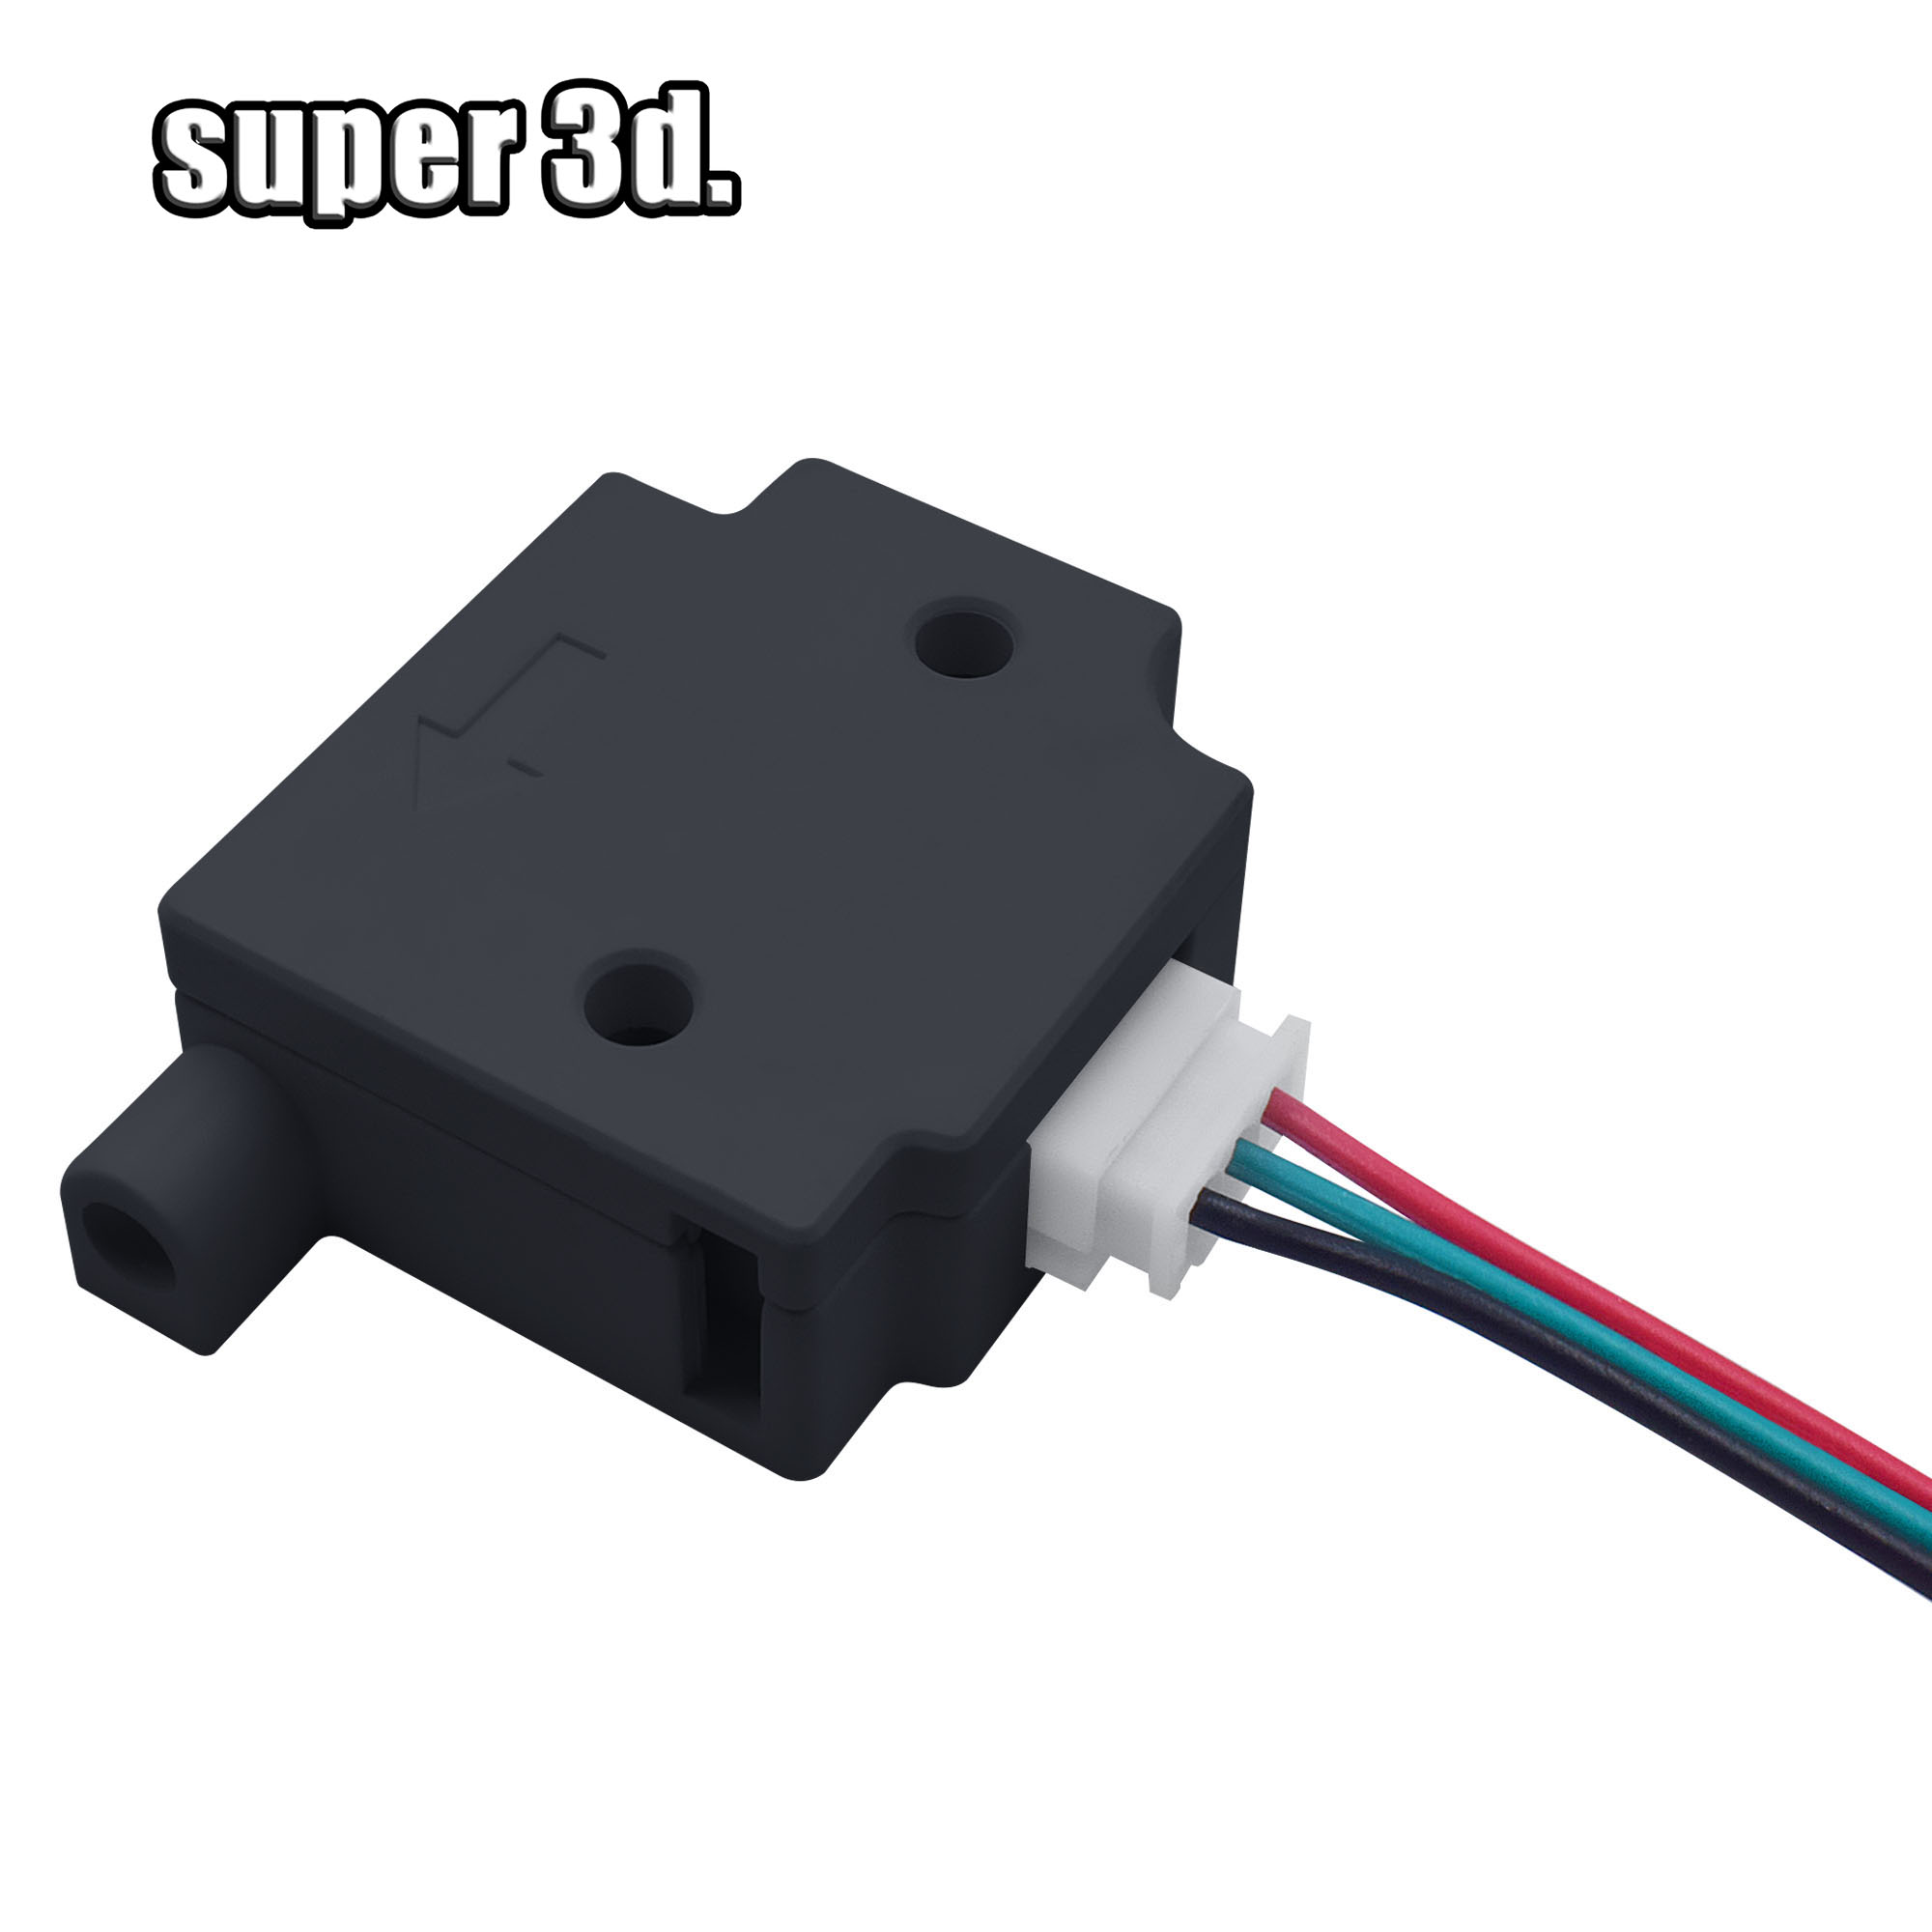 3D Printer Filament Break Detection Module With 1M Cable Run-out Sensor Material Runout Detector